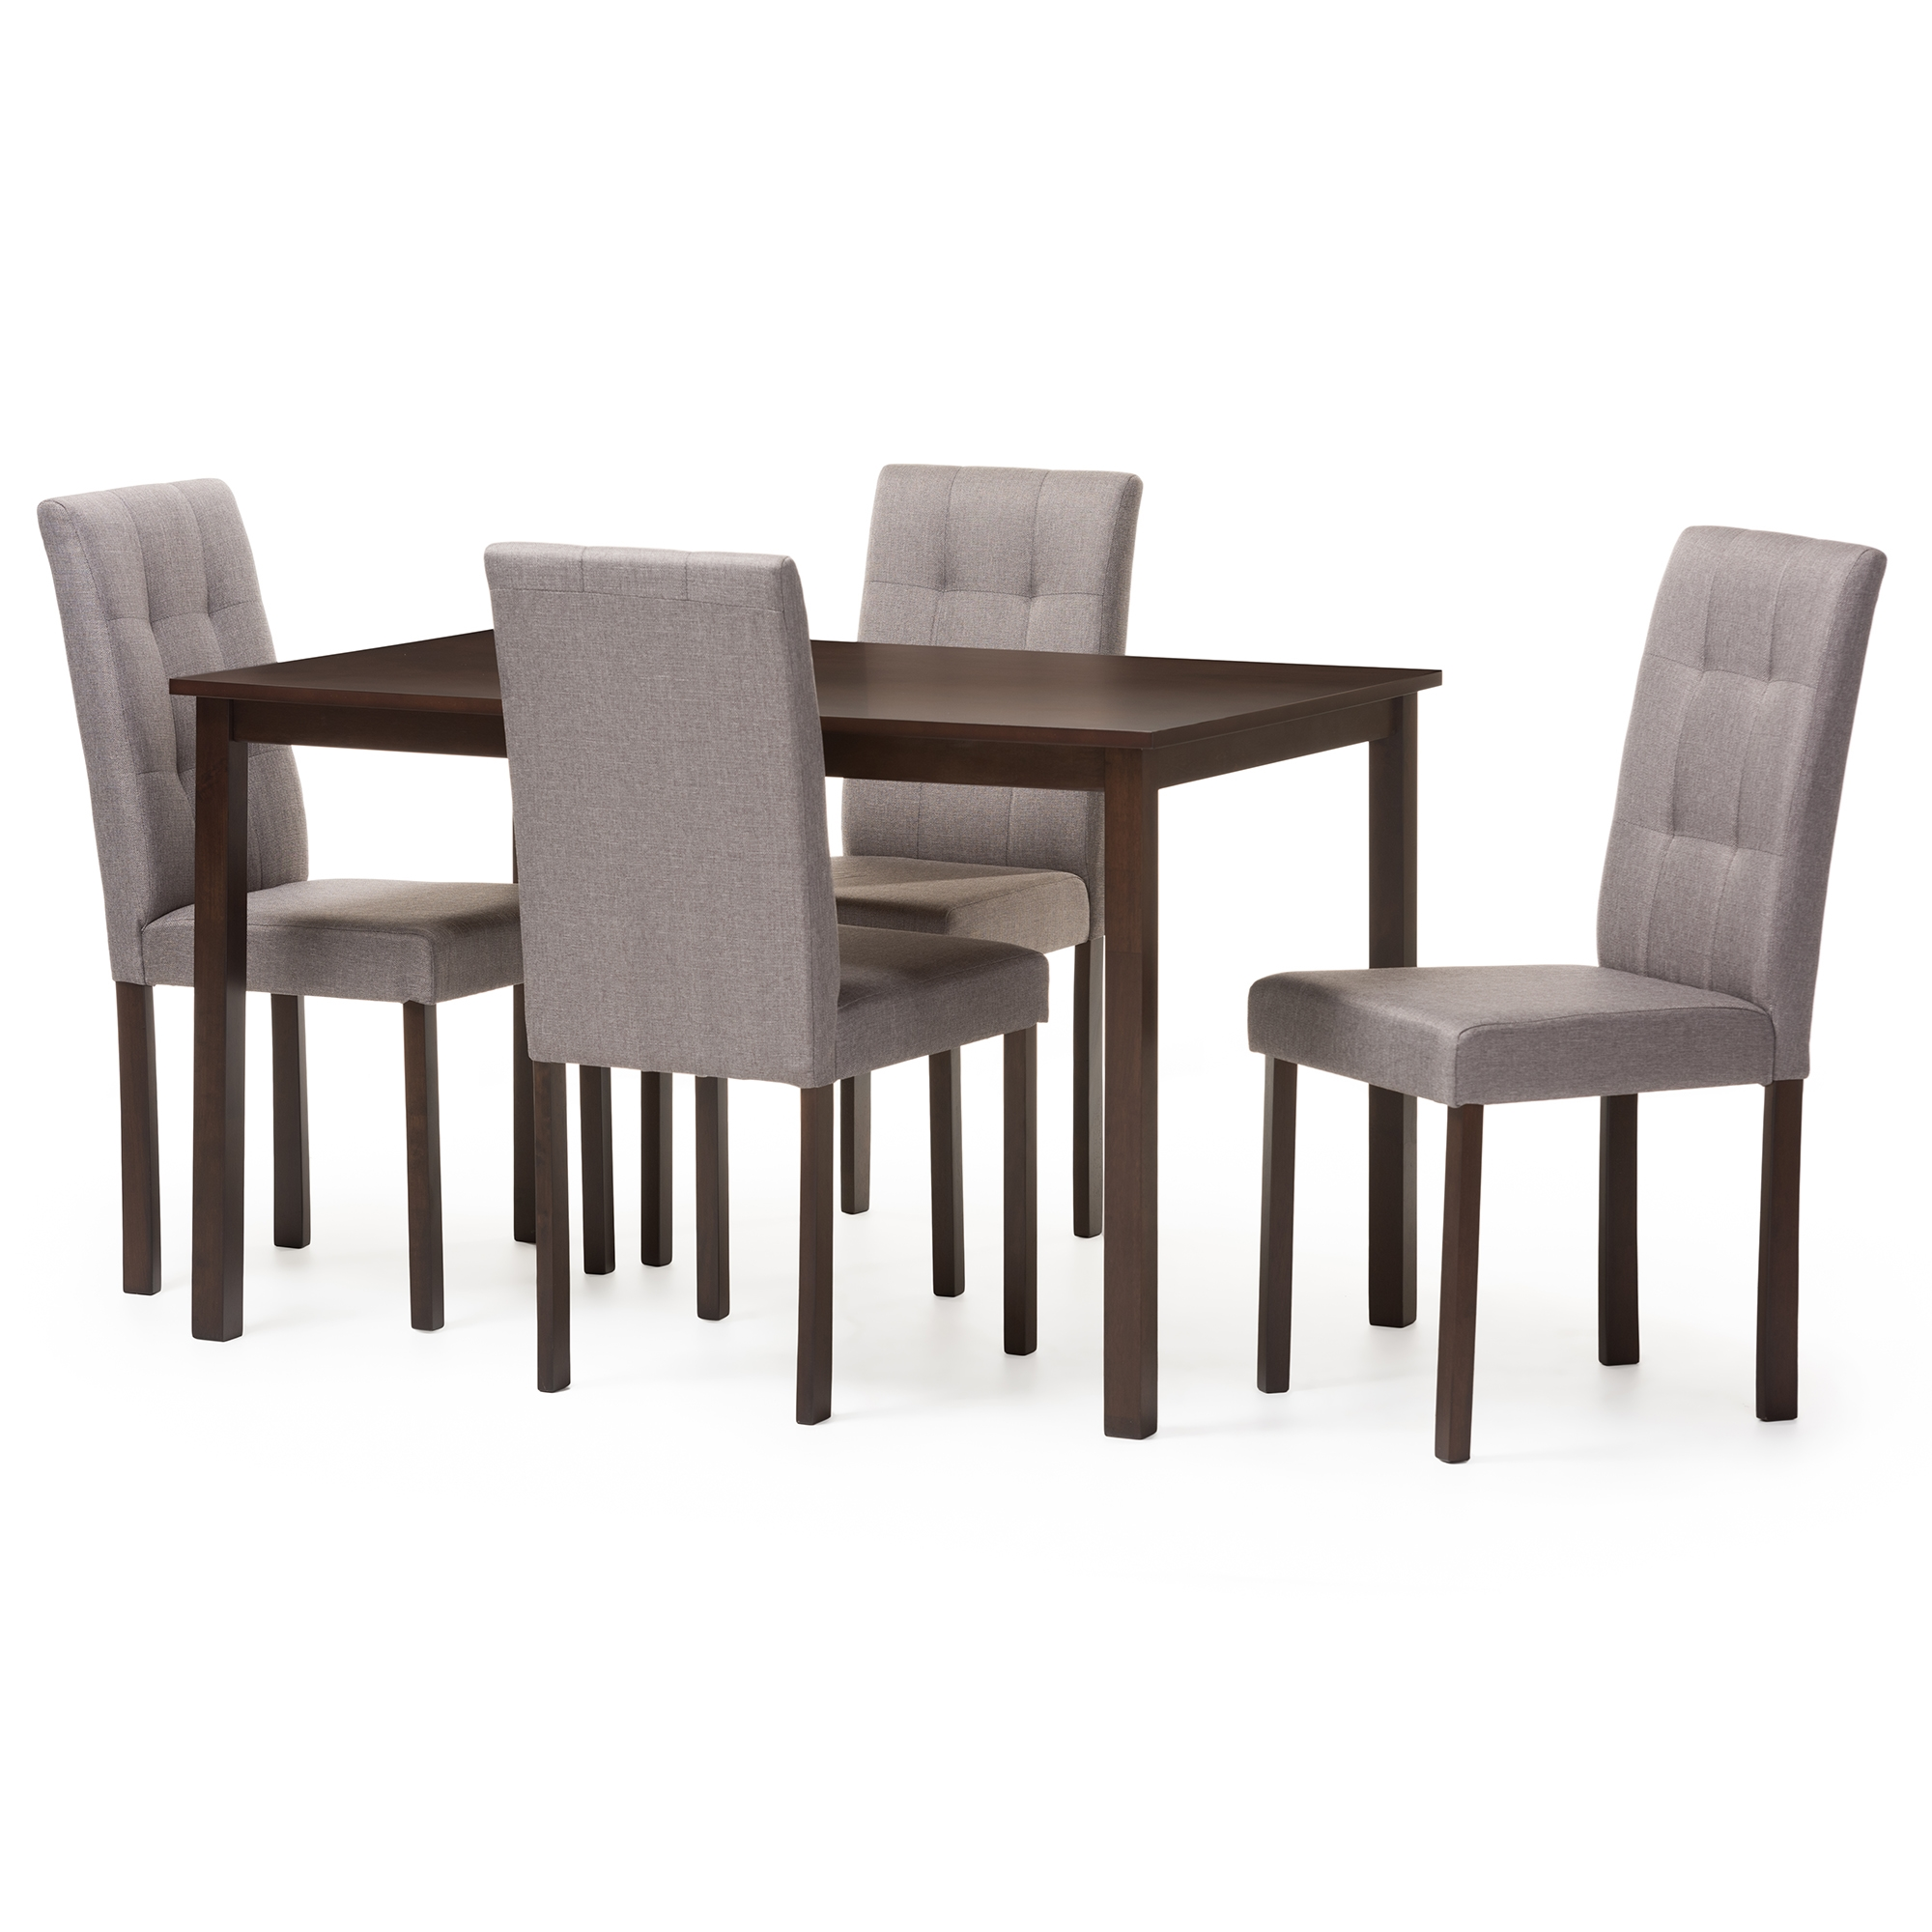 Baxton Studio Andrew Modern And Contemporary 5 Piece Grey Fabric  Upholstered Grid Tufting Dining ...